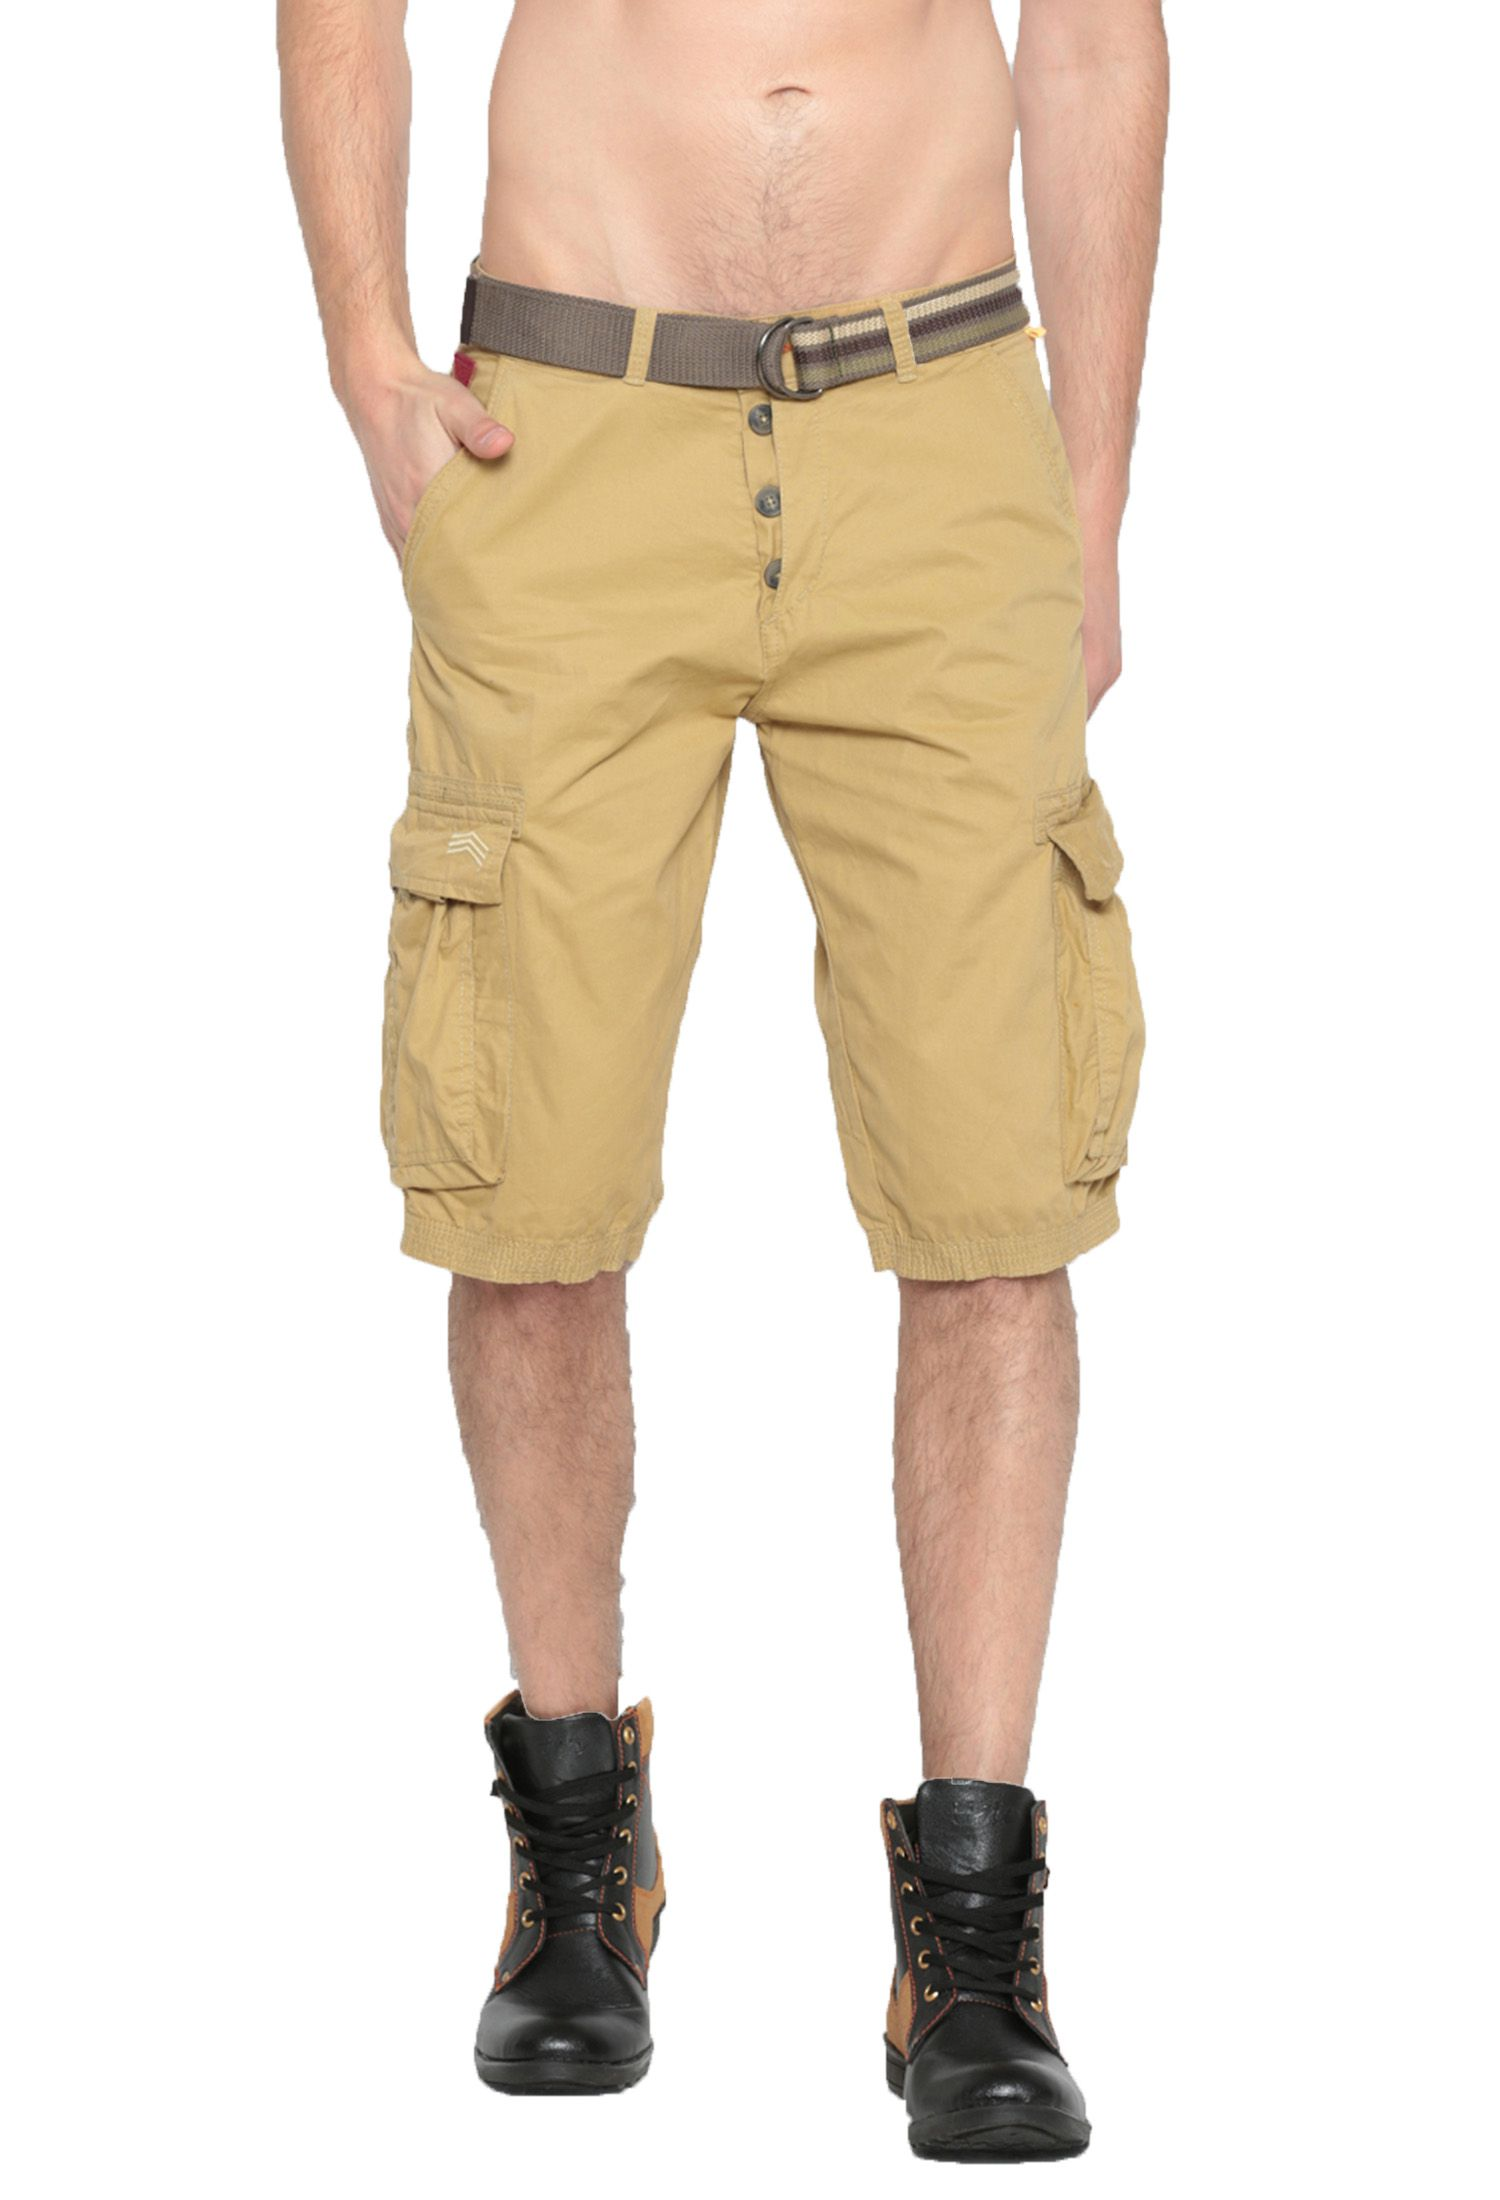 Sports 52 Wear Beige Shorts